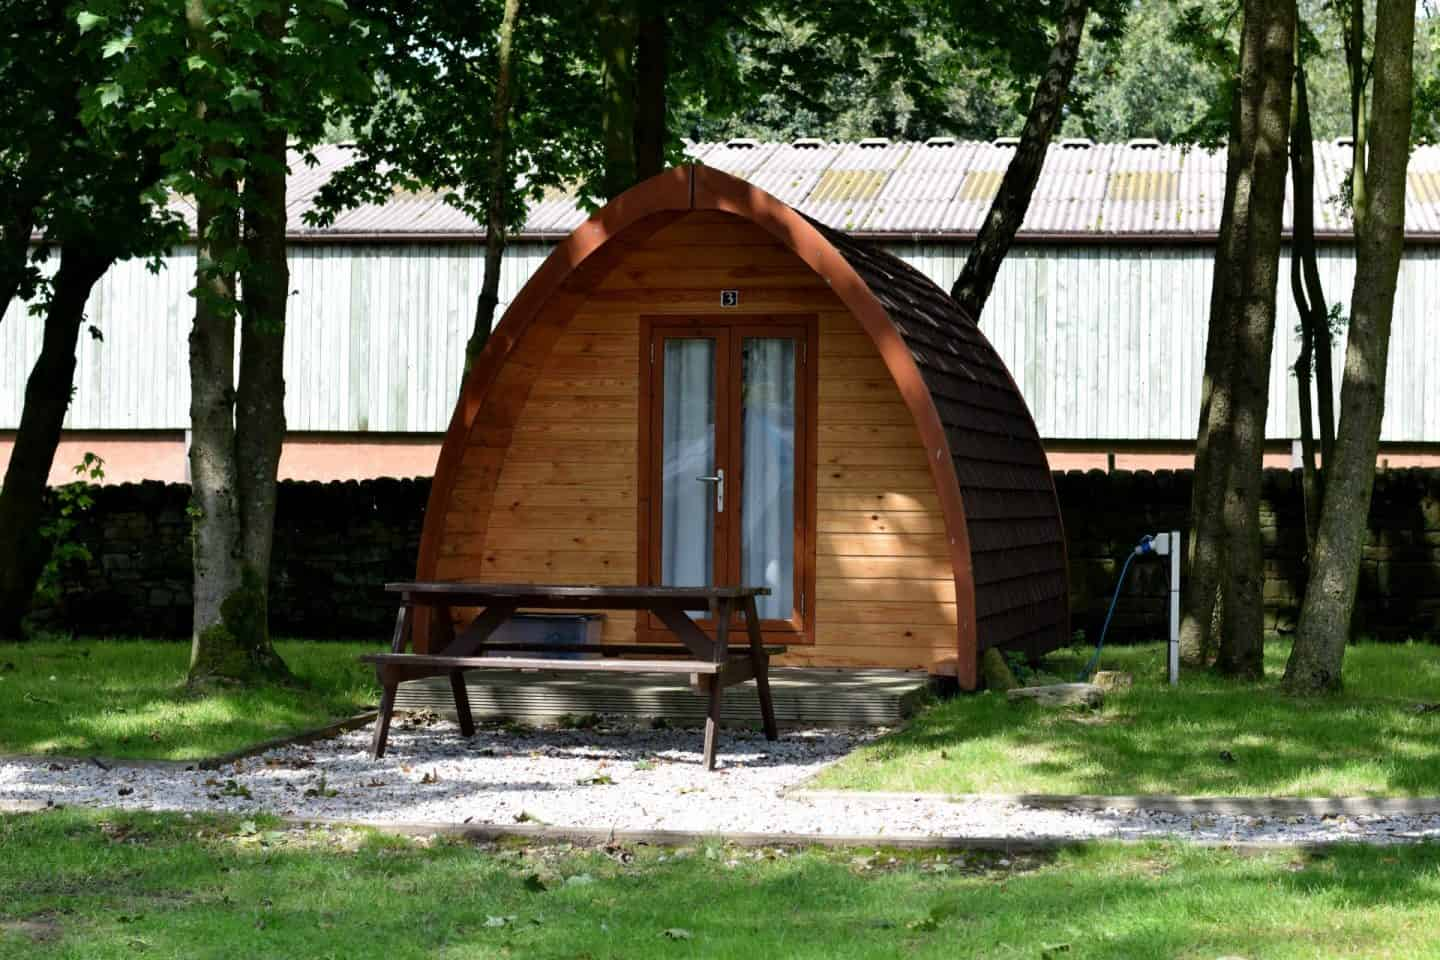 Camping pods at Crowden campsite